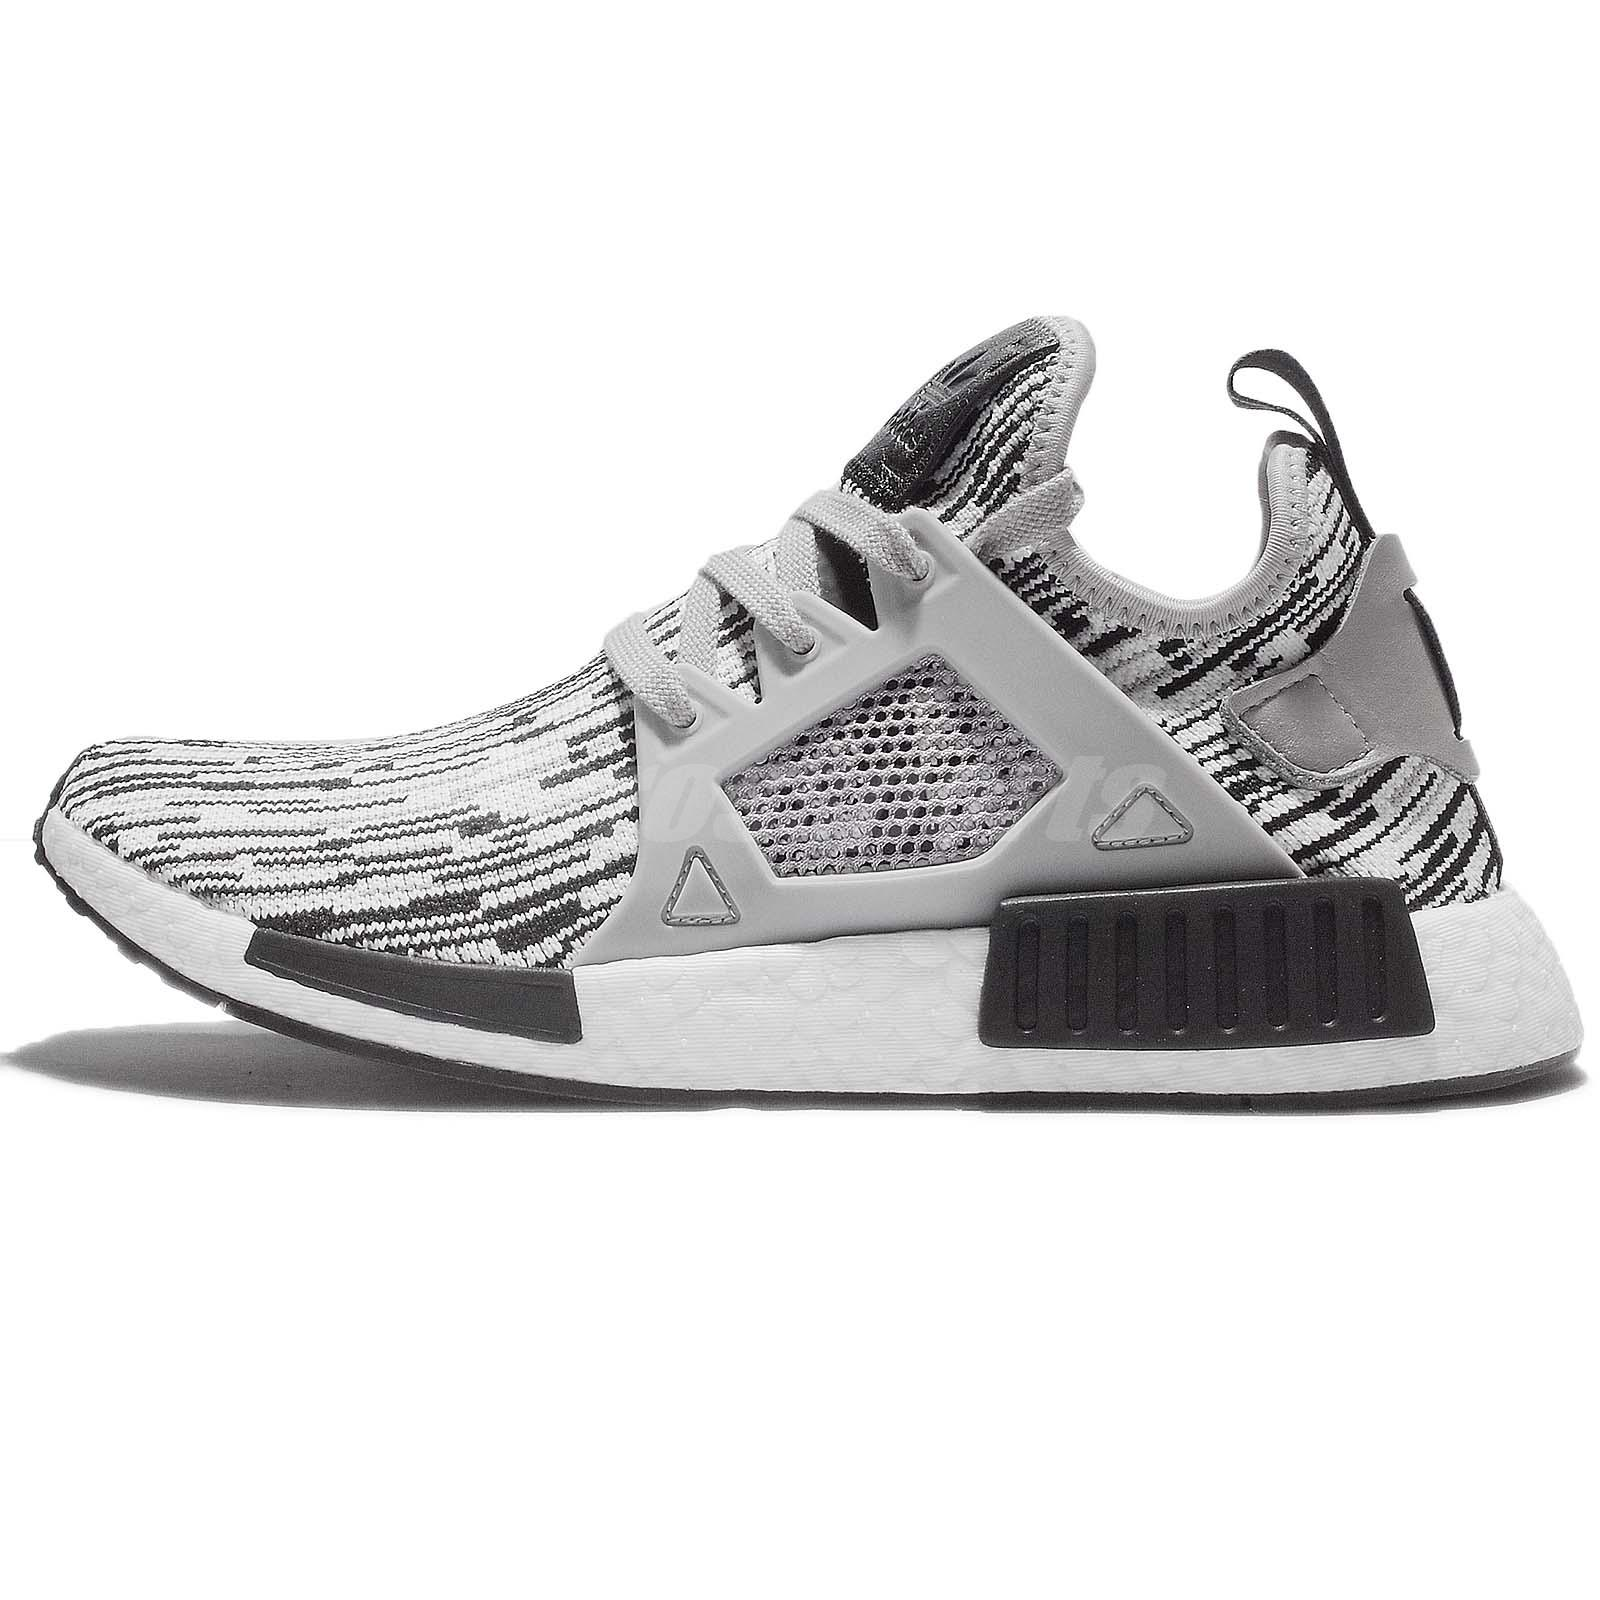 The adidas NMD XR1 'Duck Camo' Launches Tomorrow Upcoming